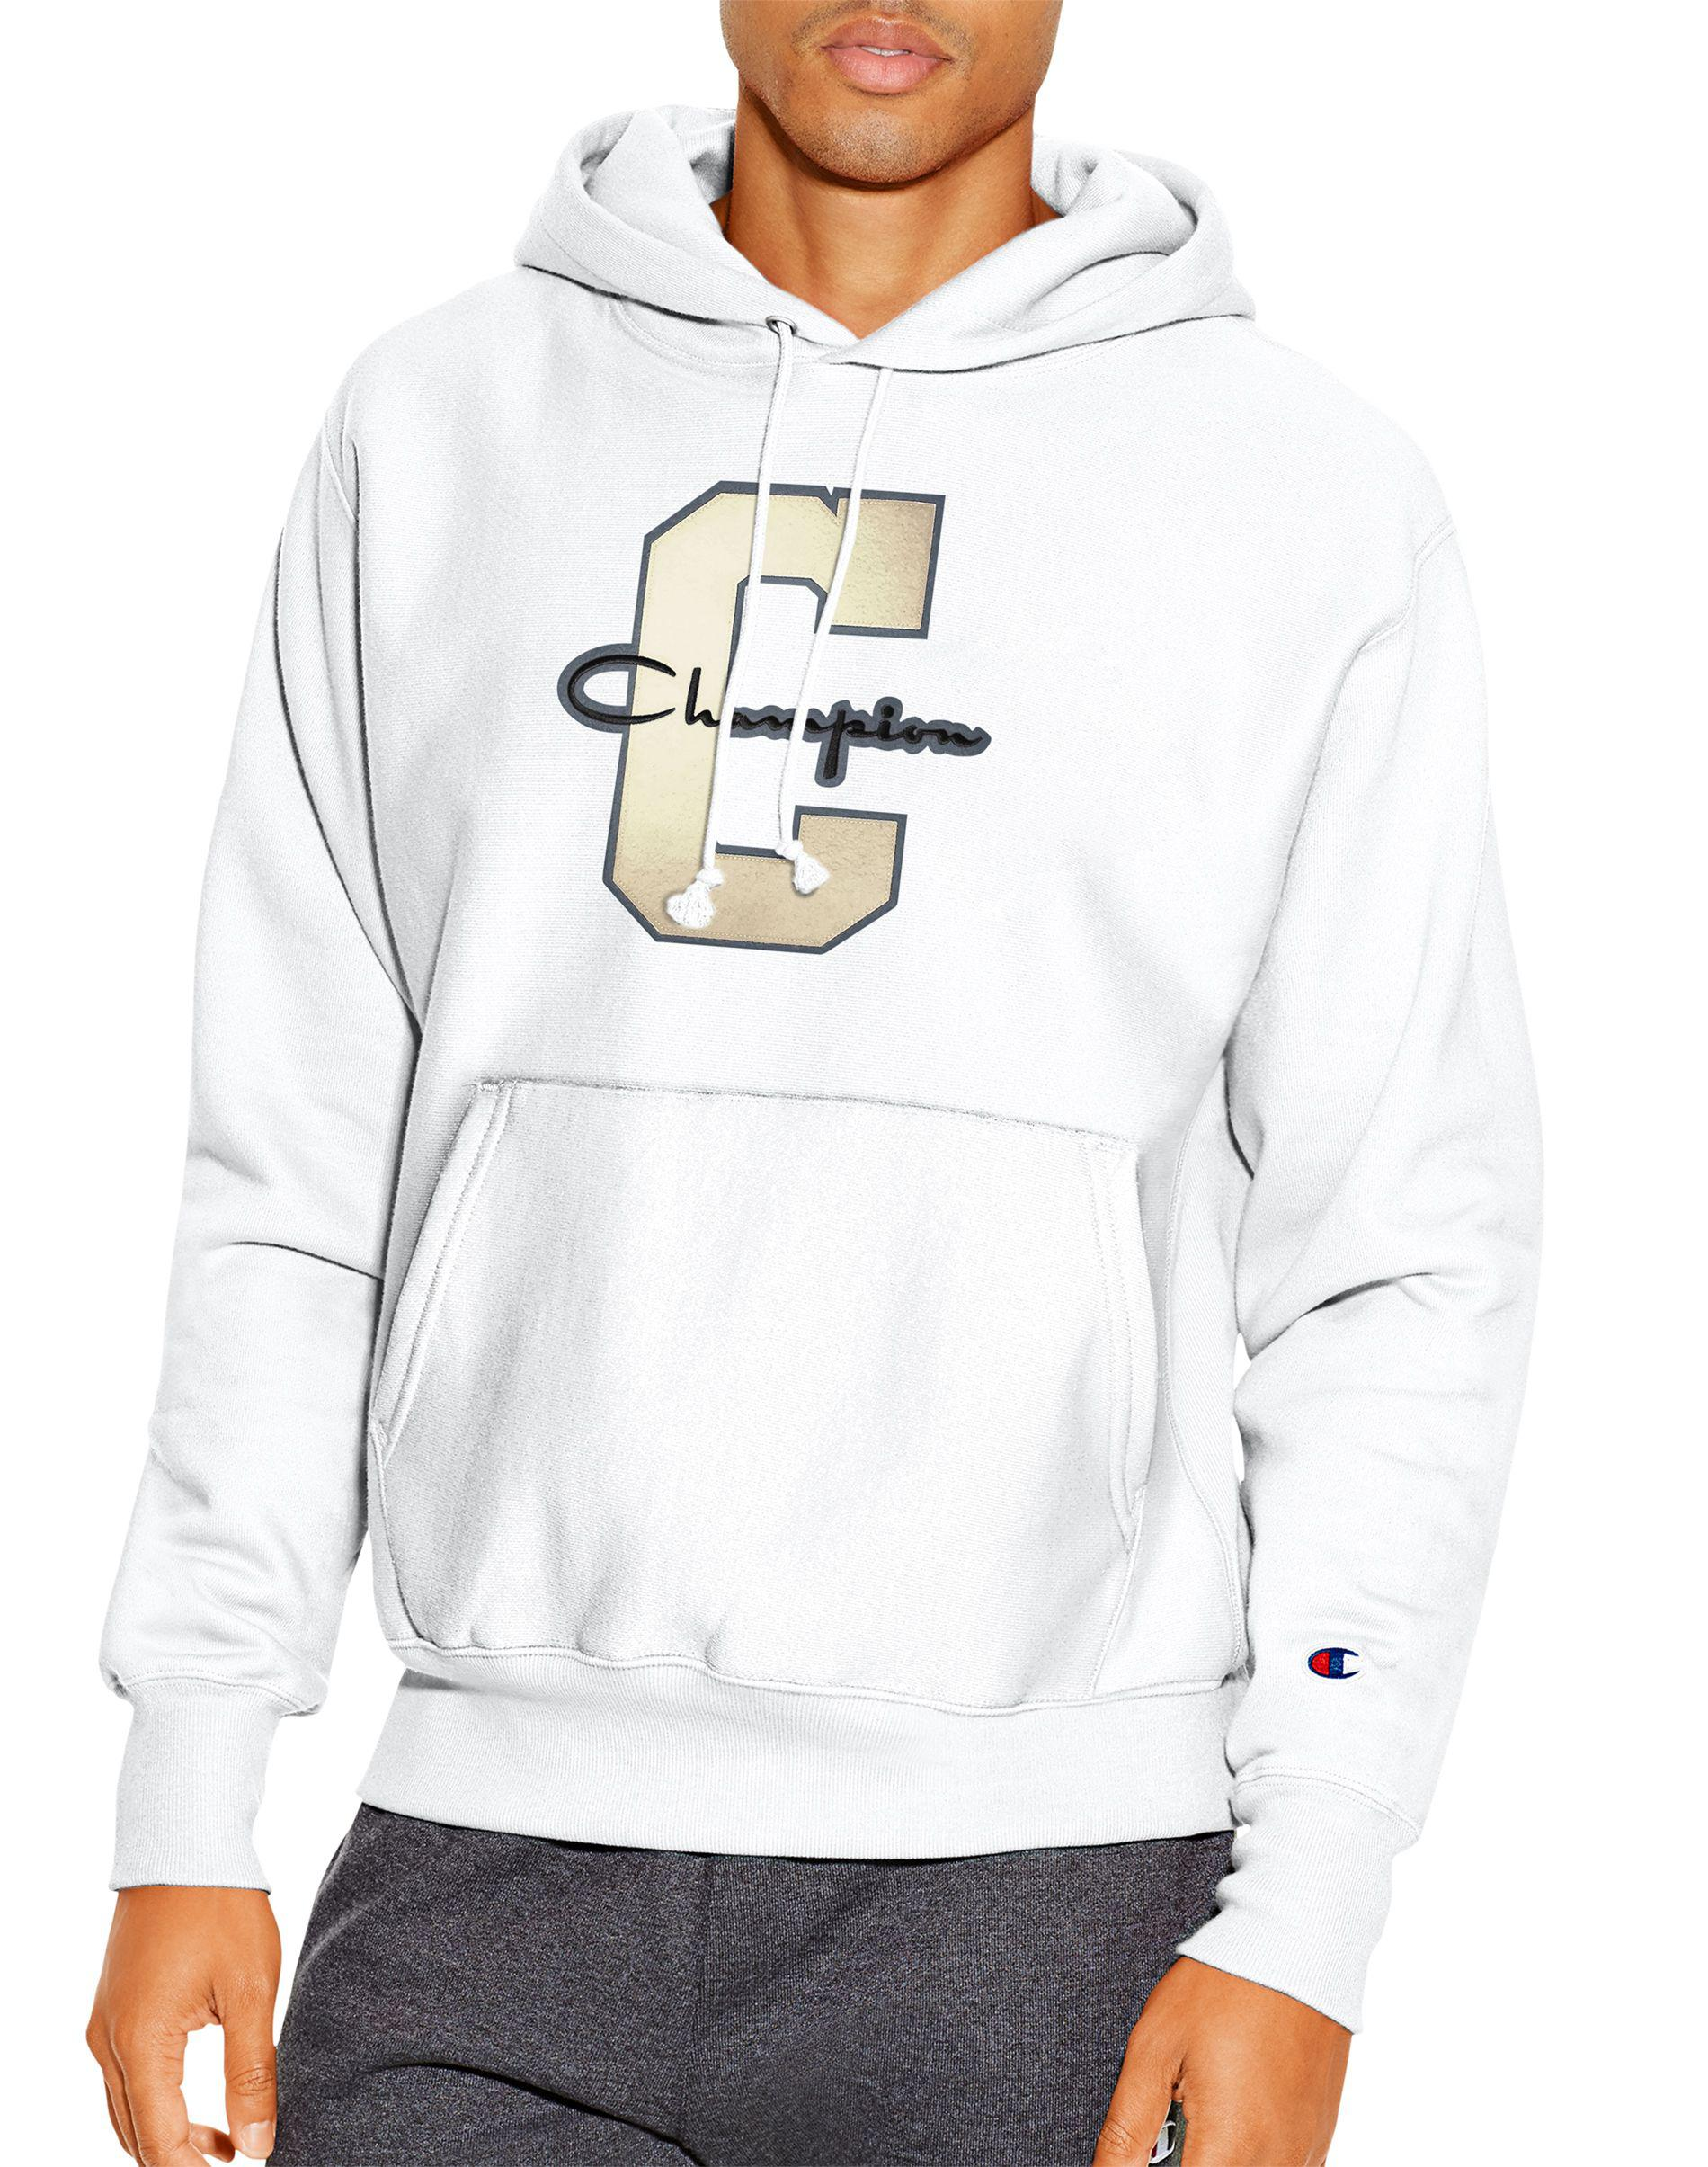 fad1df37c Champion White Life® Reverse Weave® Pullover Hoodie, Varsity C Logo for men